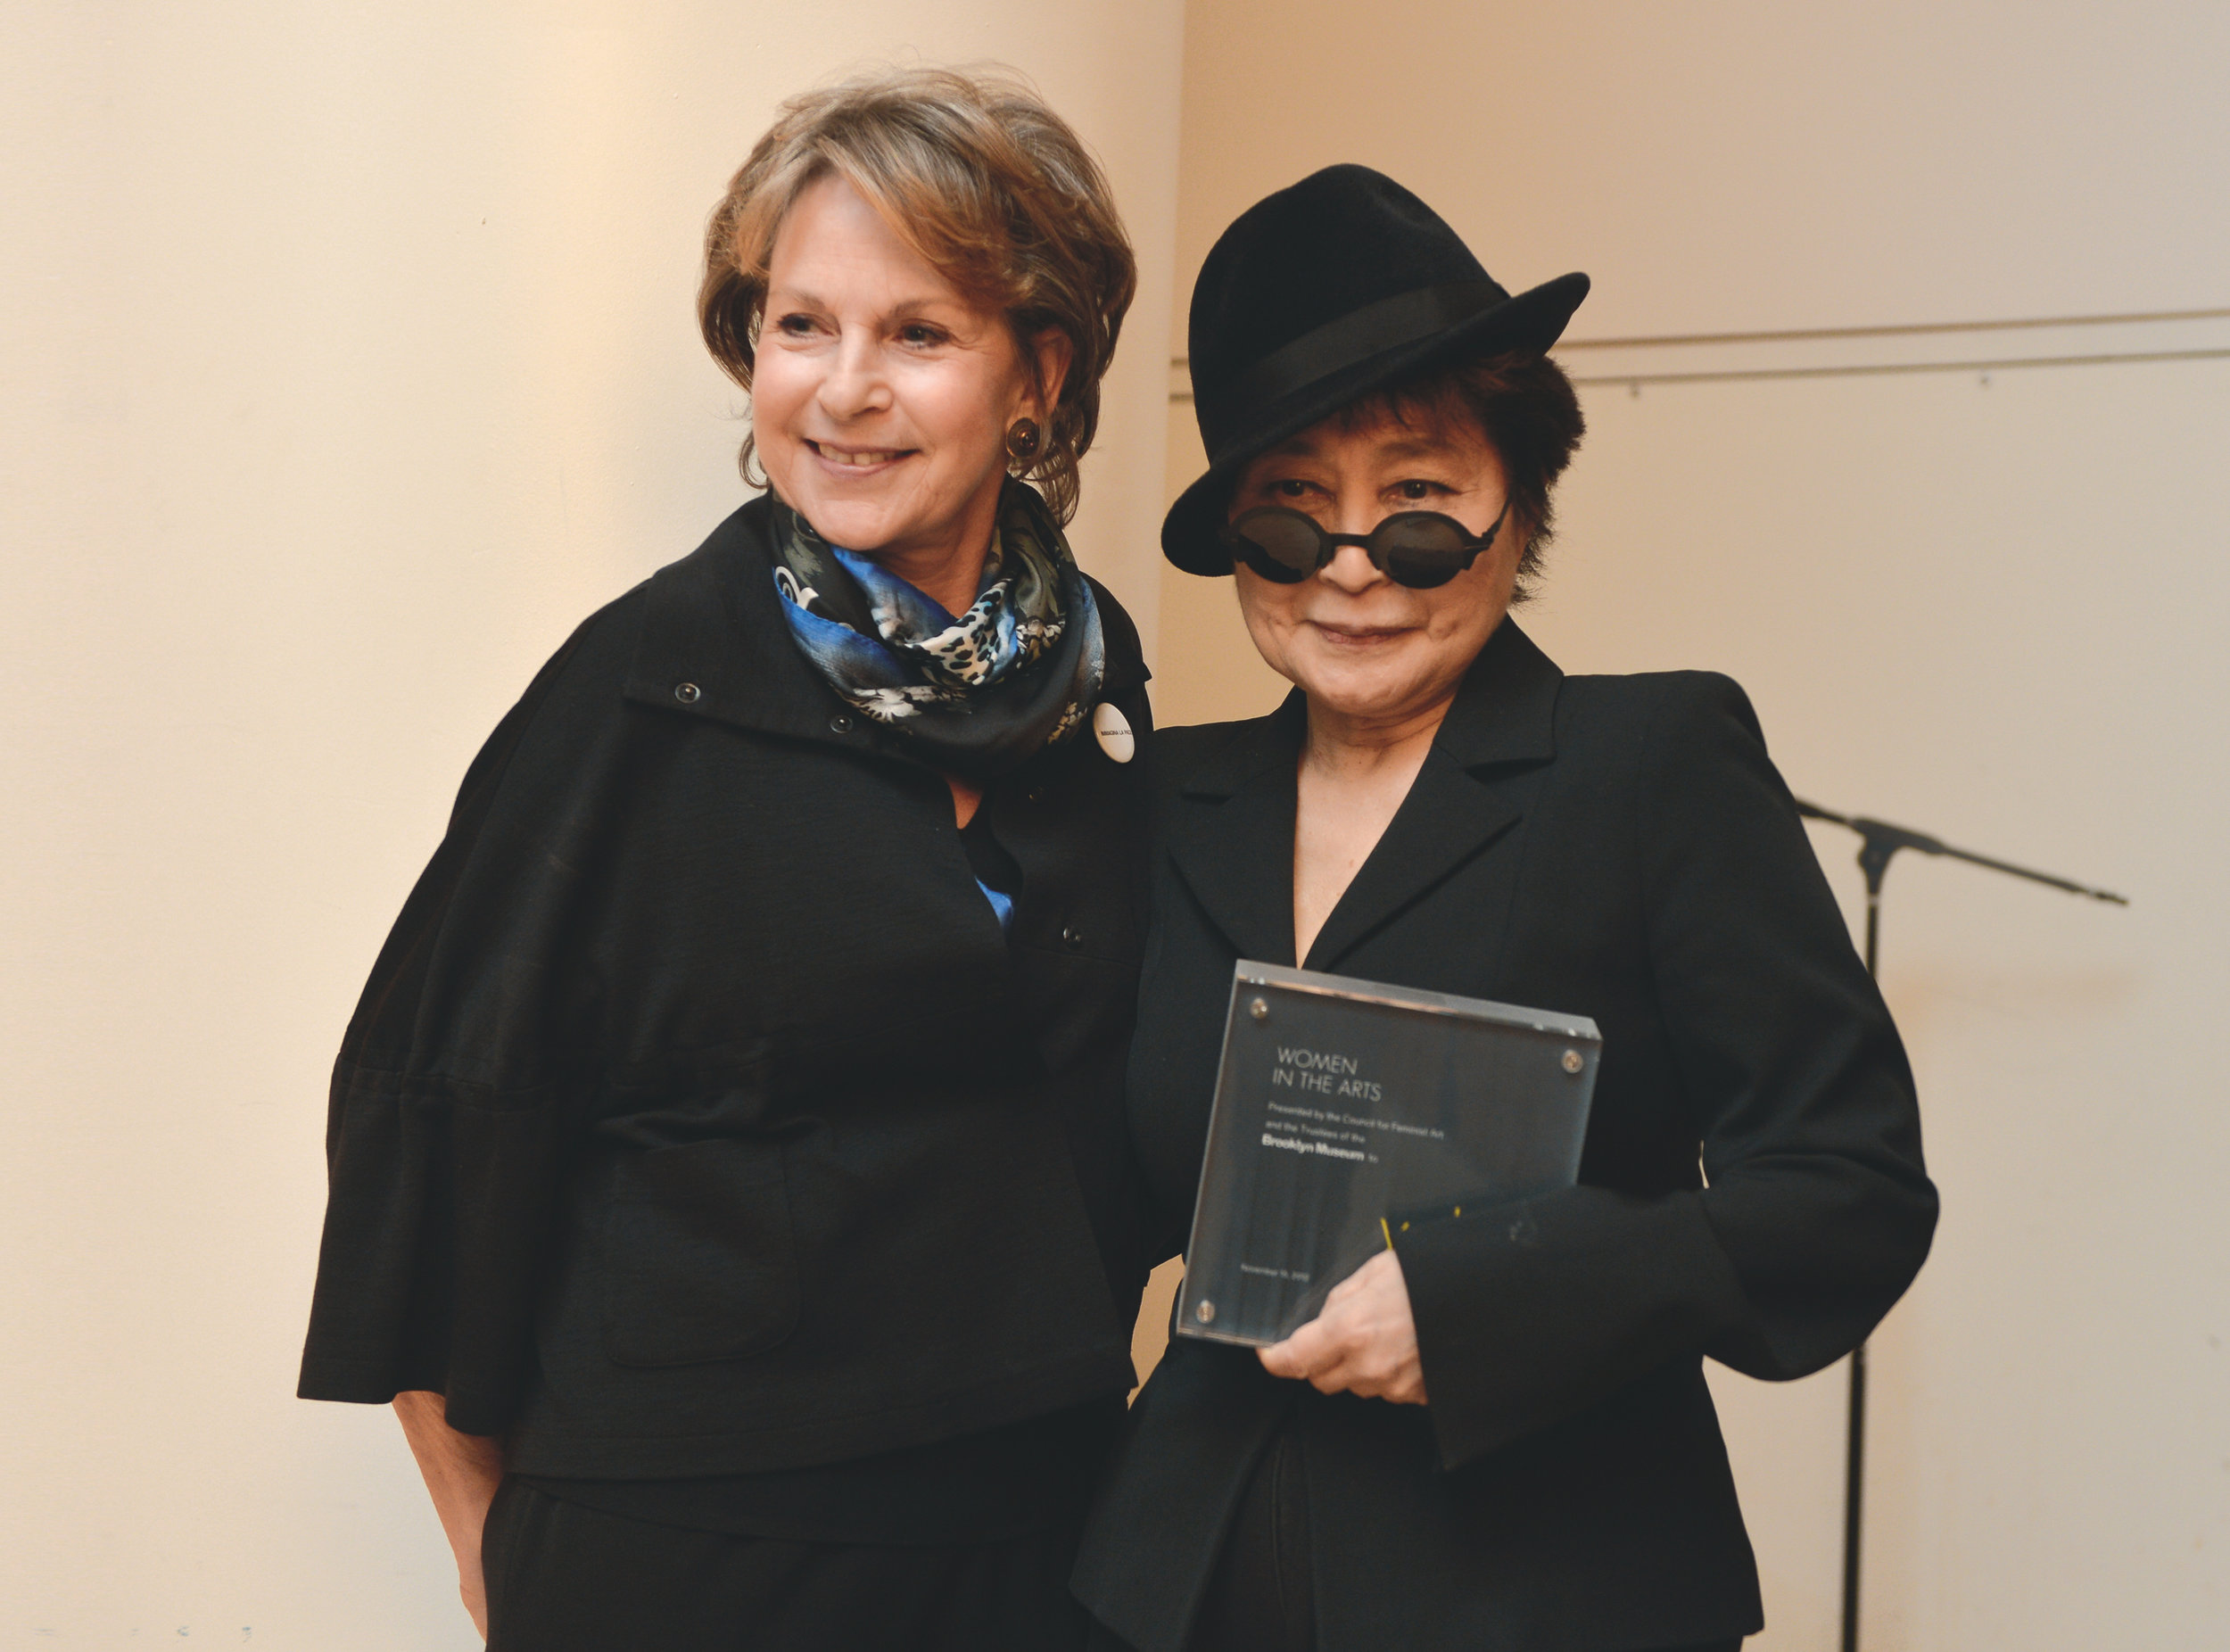 Photo Credit © 2012 Philip Greenberg.  IN THIS IMAGE  Elizabeth A. Sackler and Yoko Ono November 15 2012  Brooklyn Museum Yoko Ono Tenth Annual Women in the Arts Benefit Luncheon  Introduction by Museum Director Arnold L. Lehman followed by a conversation between Ono and Catherine Morris, Curator of the Elizabeth A. Sackler Center for Feminist Art.  Multi-media Conceptual artist Yoko Ono was be honored at the tenth annual Women in the Arts luncheon Thursday, November 15, 2012. Proceeds from the event benefited the many educational and artistic programs offered by the Brooklyn Museum and its Elizabeth A. Sackler Center for Feminist Art.  The program began at 11 a.m. with an introduction by Museum Director Arnold L. Lehman followed by a conversation between Ono and Catherine Morris, Curator of the Sackler Center. The program concludes with the presentation of the 2012 Women in the Arts Award to Ono and a reception and luncheon in the Museum's Beaux-Arts Court.